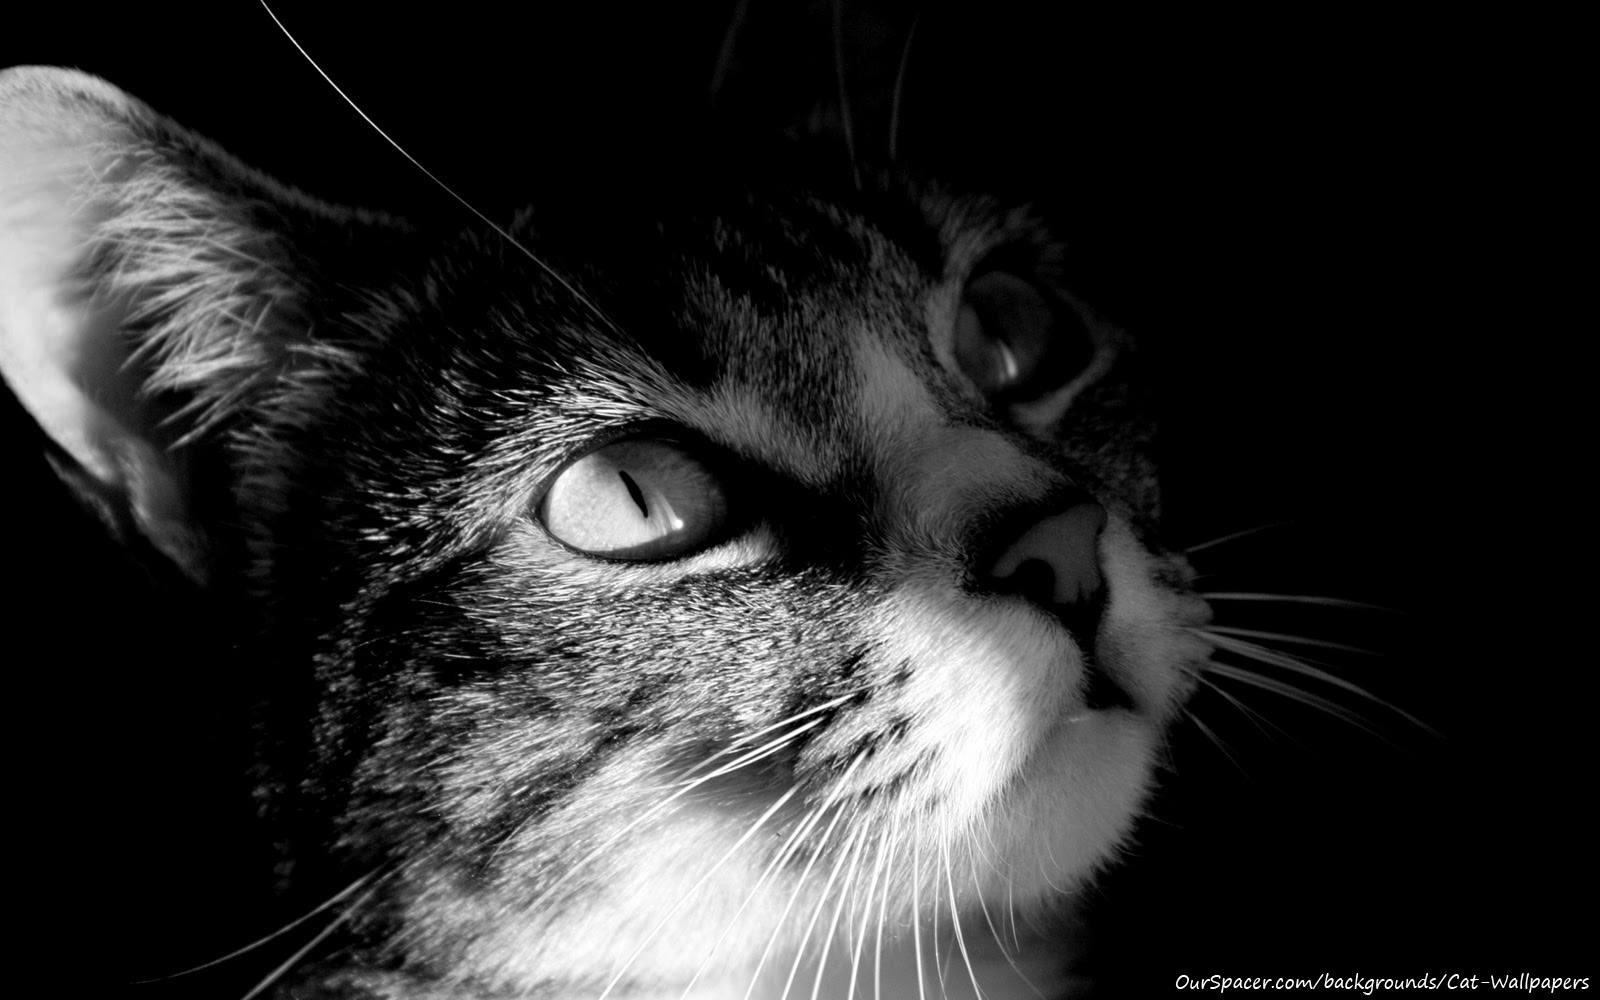 Cat looking forward to the future wallpapers for myspace, twitter, and hi5 backgrounds